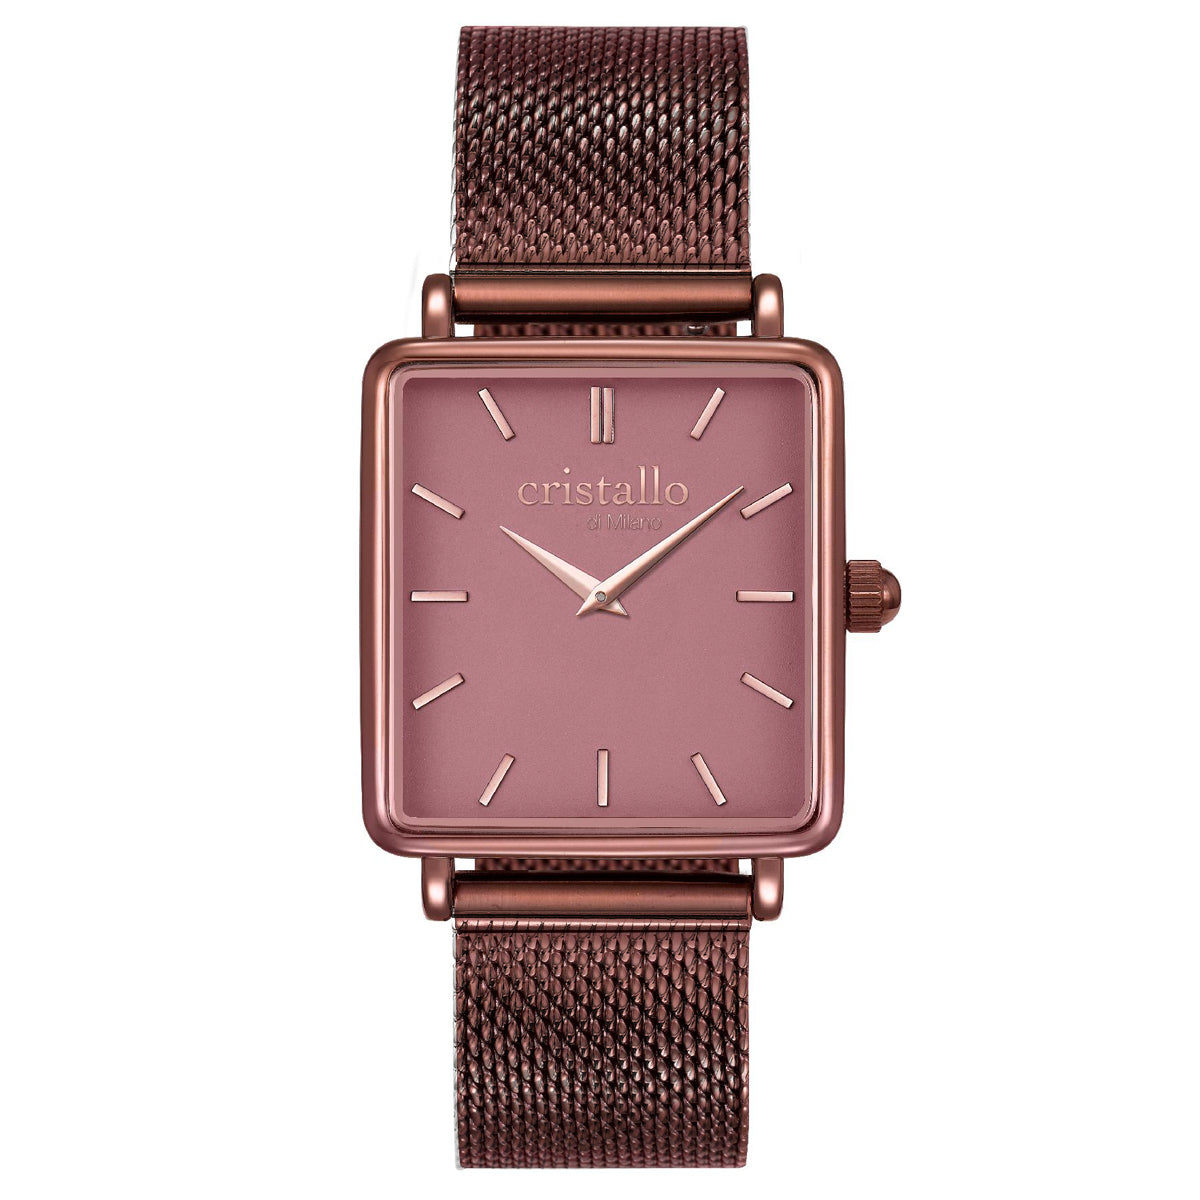 La Tétragone Mocha In Dark Brown Mesh Strap Rectangular Watch